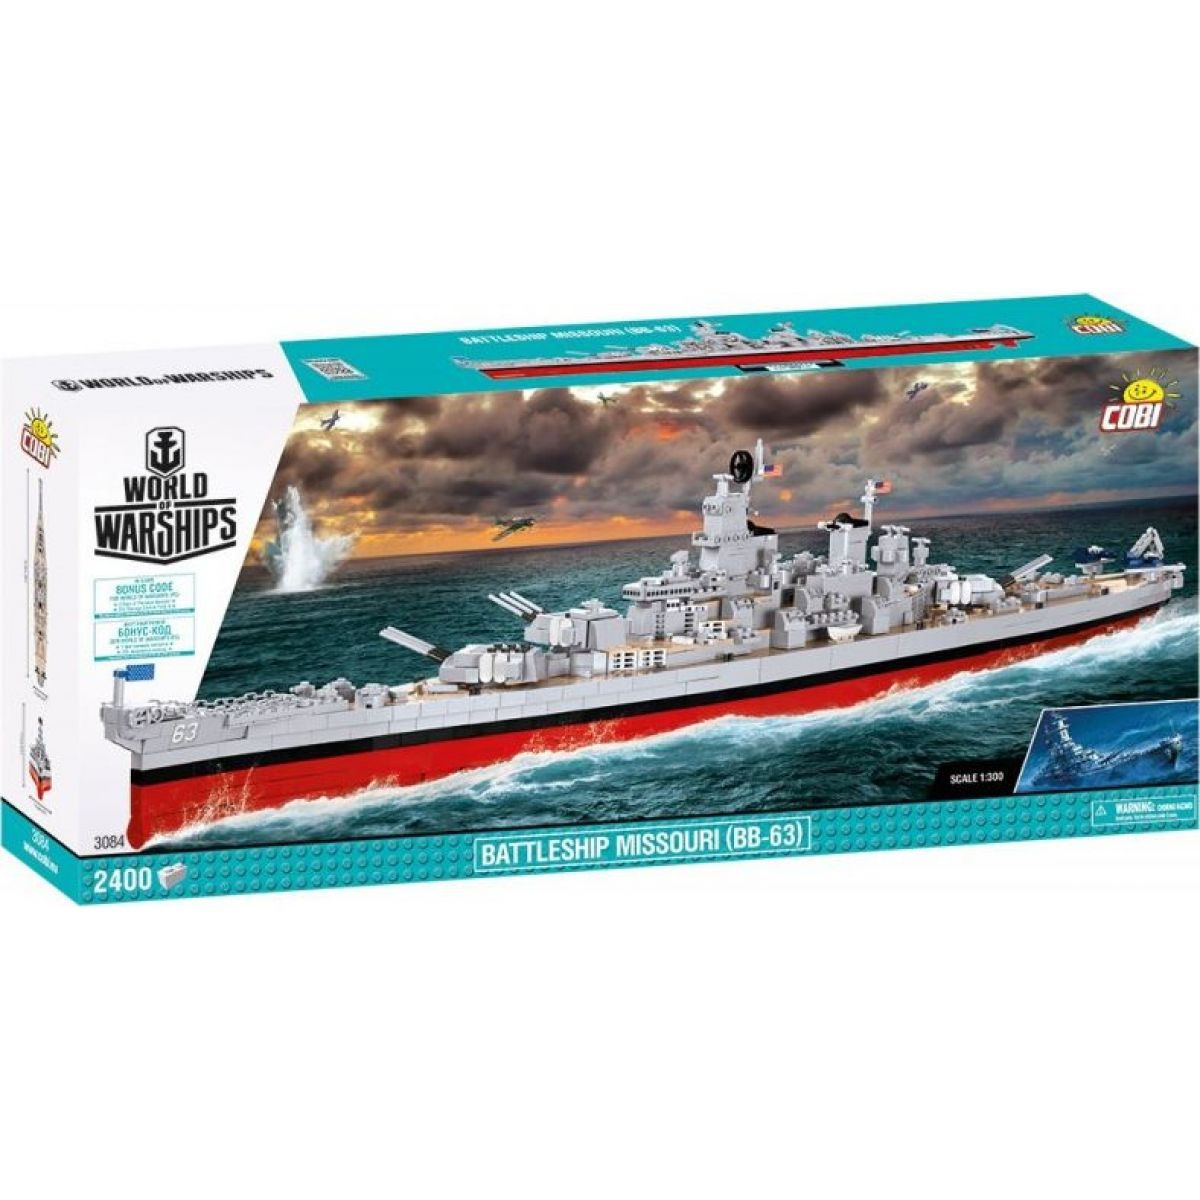 Cobi 3084 World of Warships Bitevník Misouri BB-63 1:300